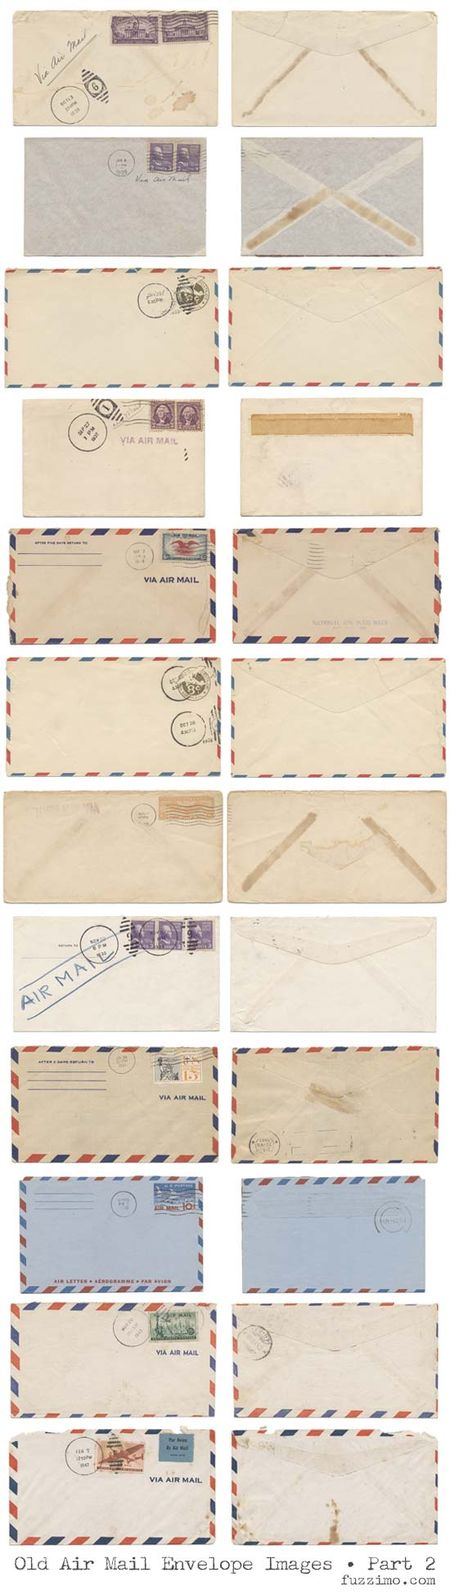 Fzm-Old-Air-Mail-Envelopes-(2)-02